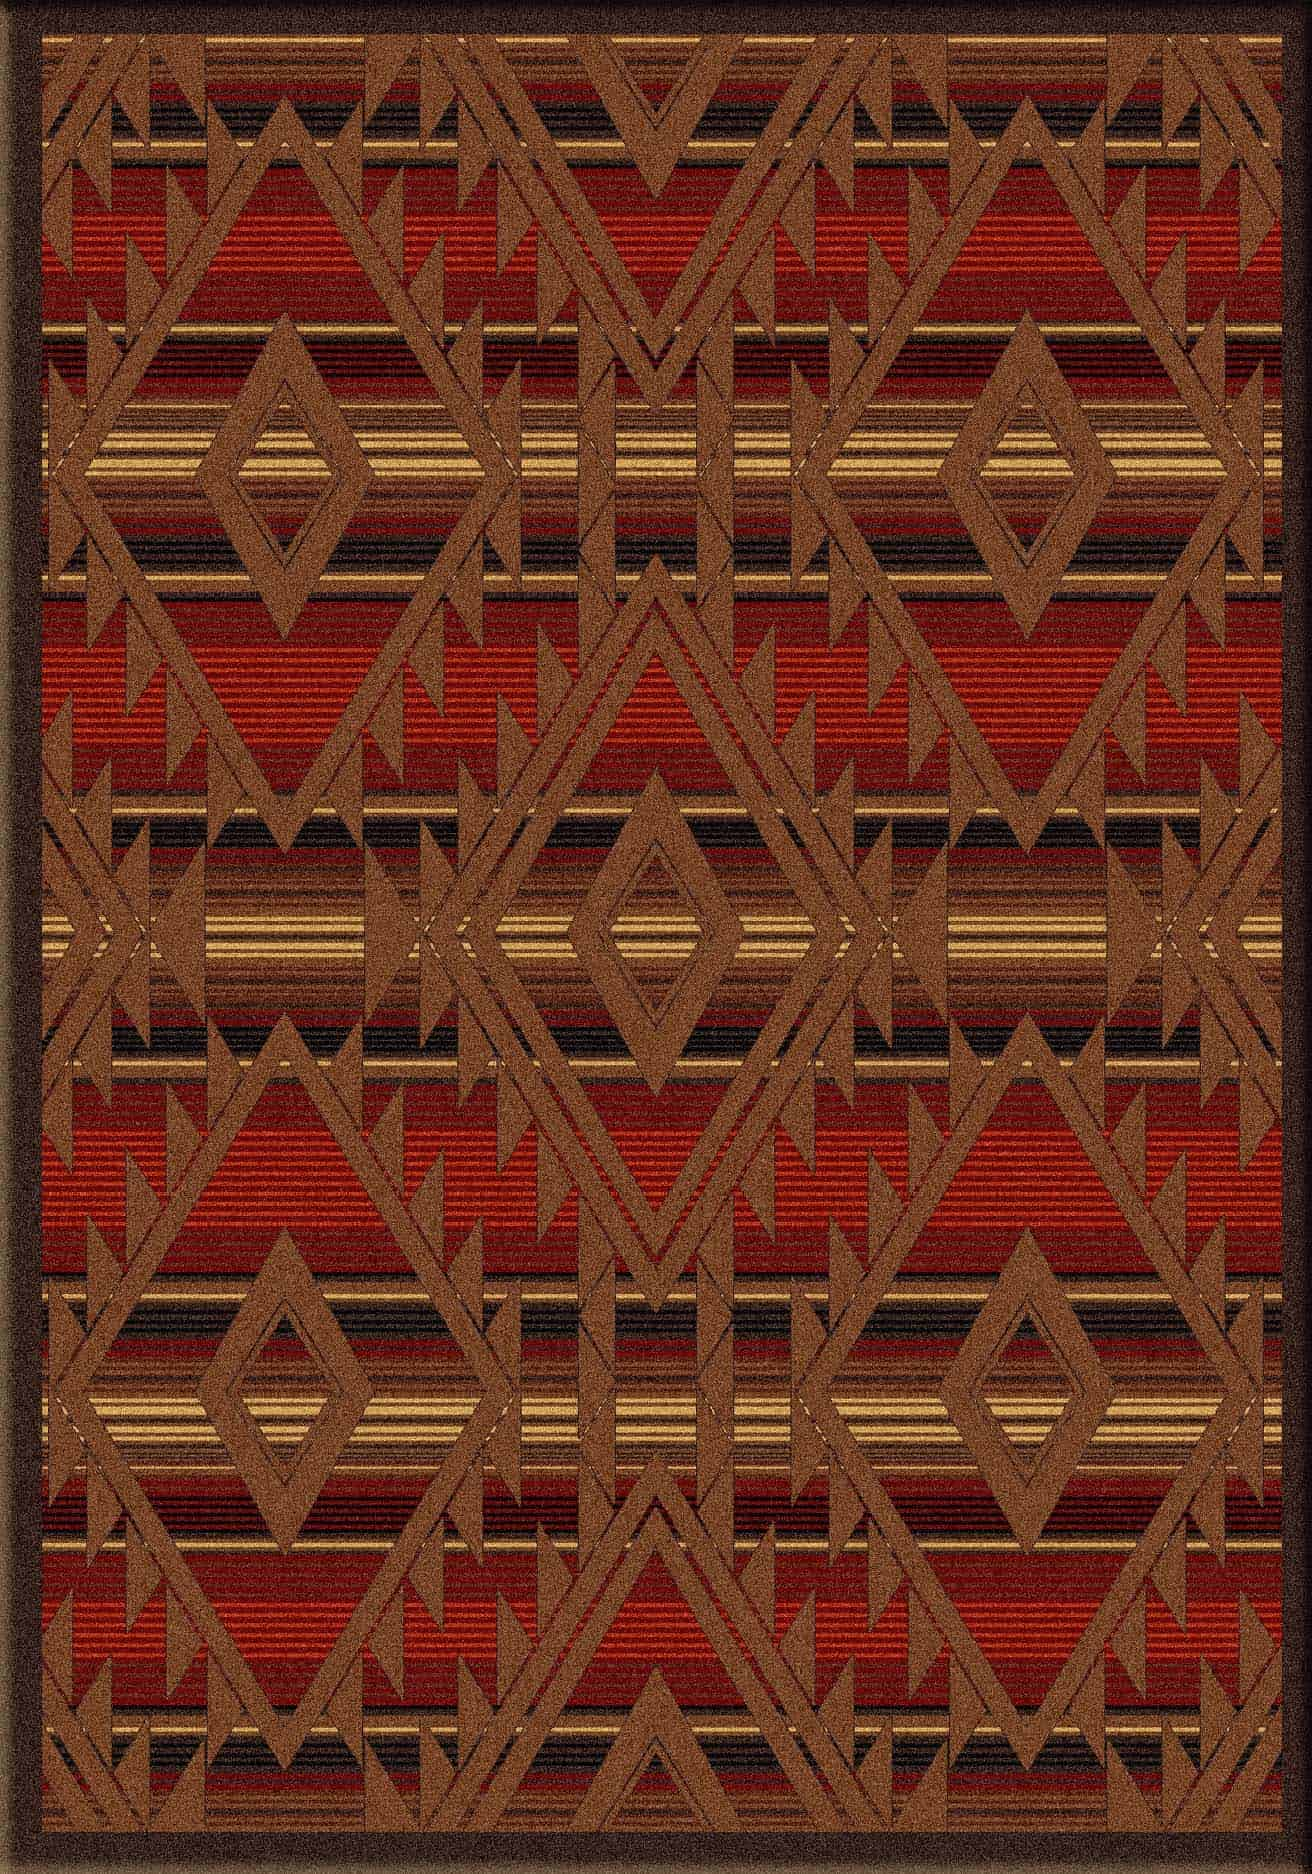 Spirit Of Santa Fe Rug On Sale Now With Free Shipping